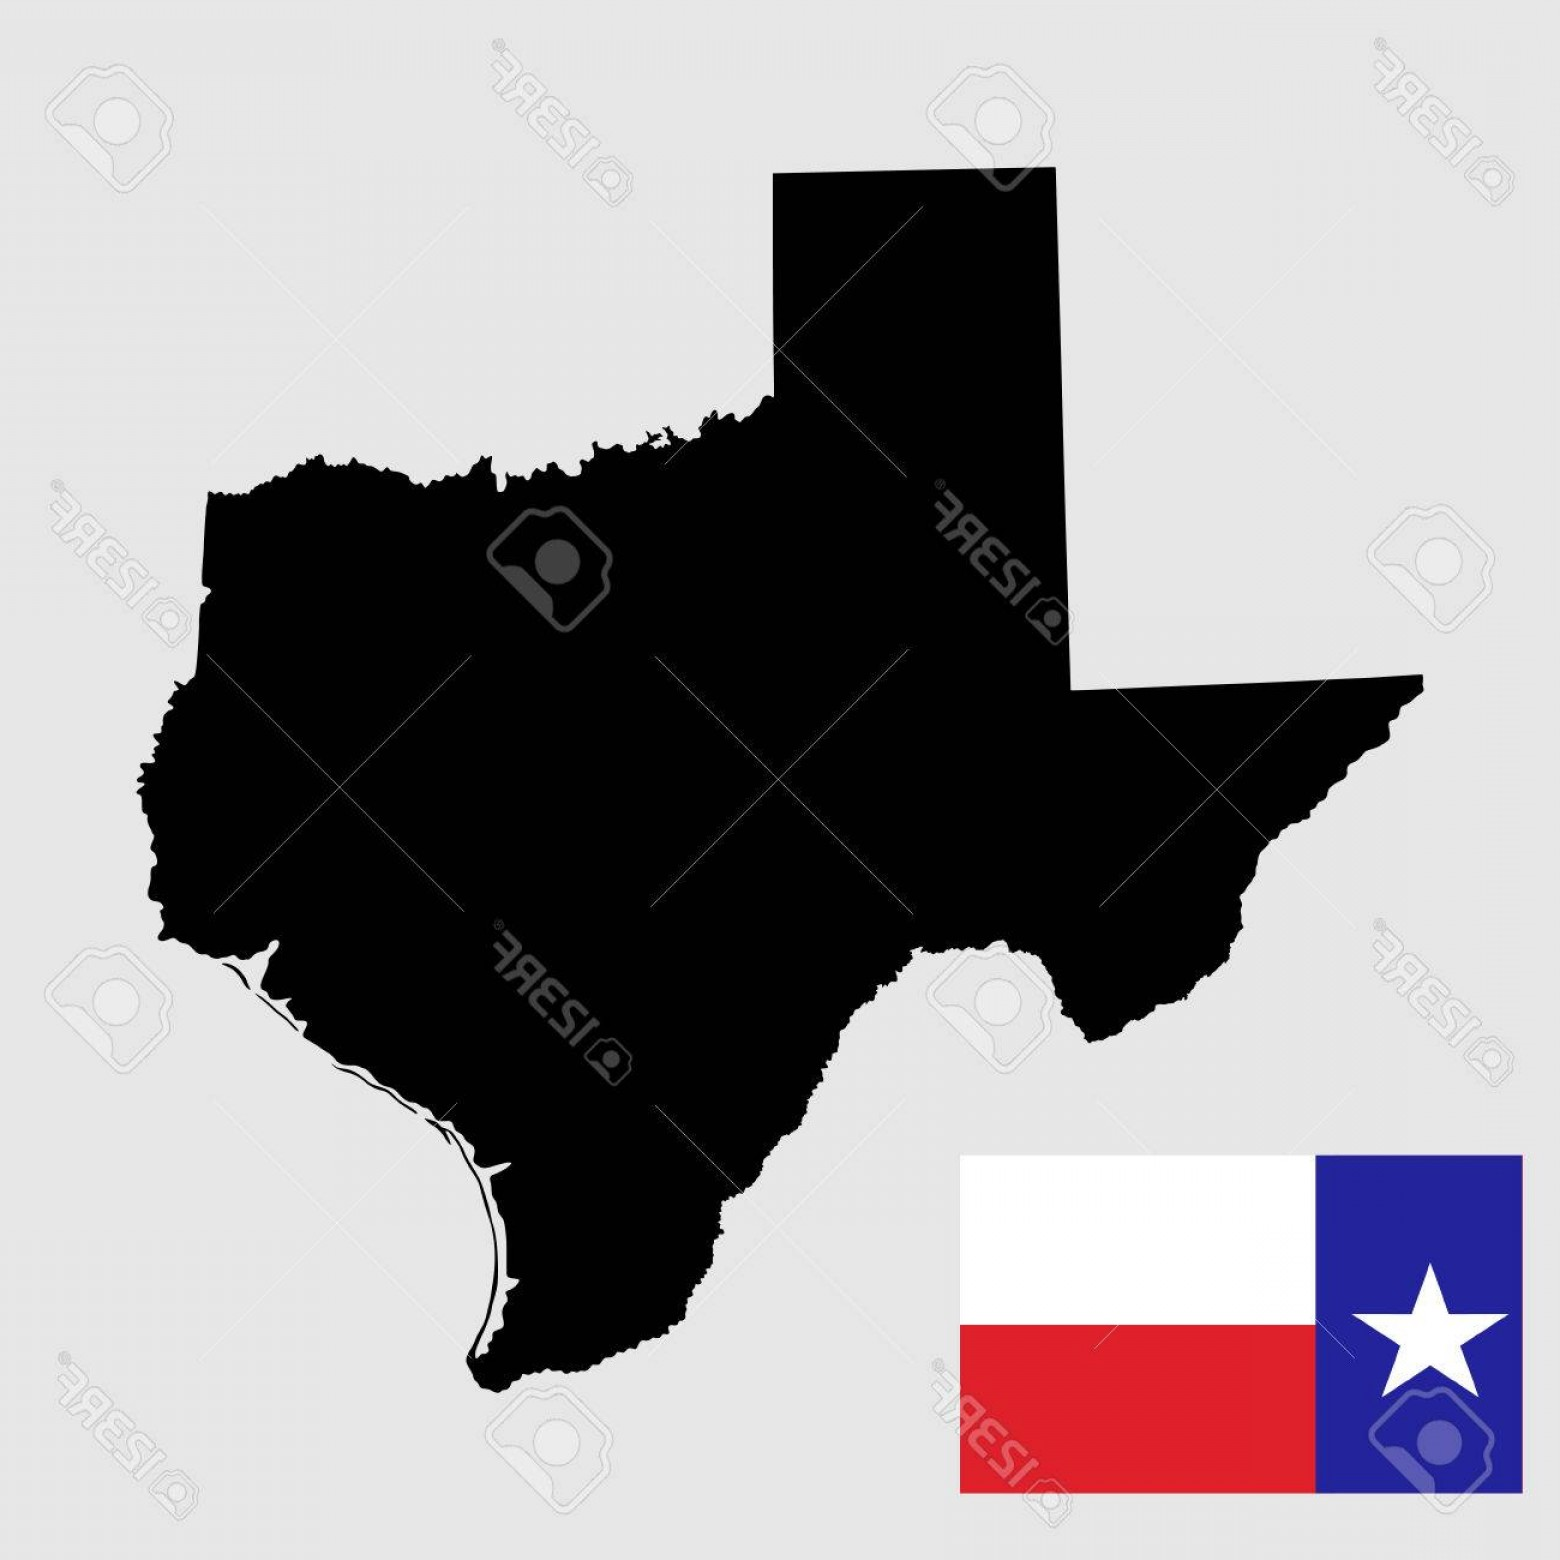 Texas Flag Vector Art: Photostock Vector Texas Vector Map High Detailed Silhouette Illustration Isolated On White Background Texas Flag Vecto